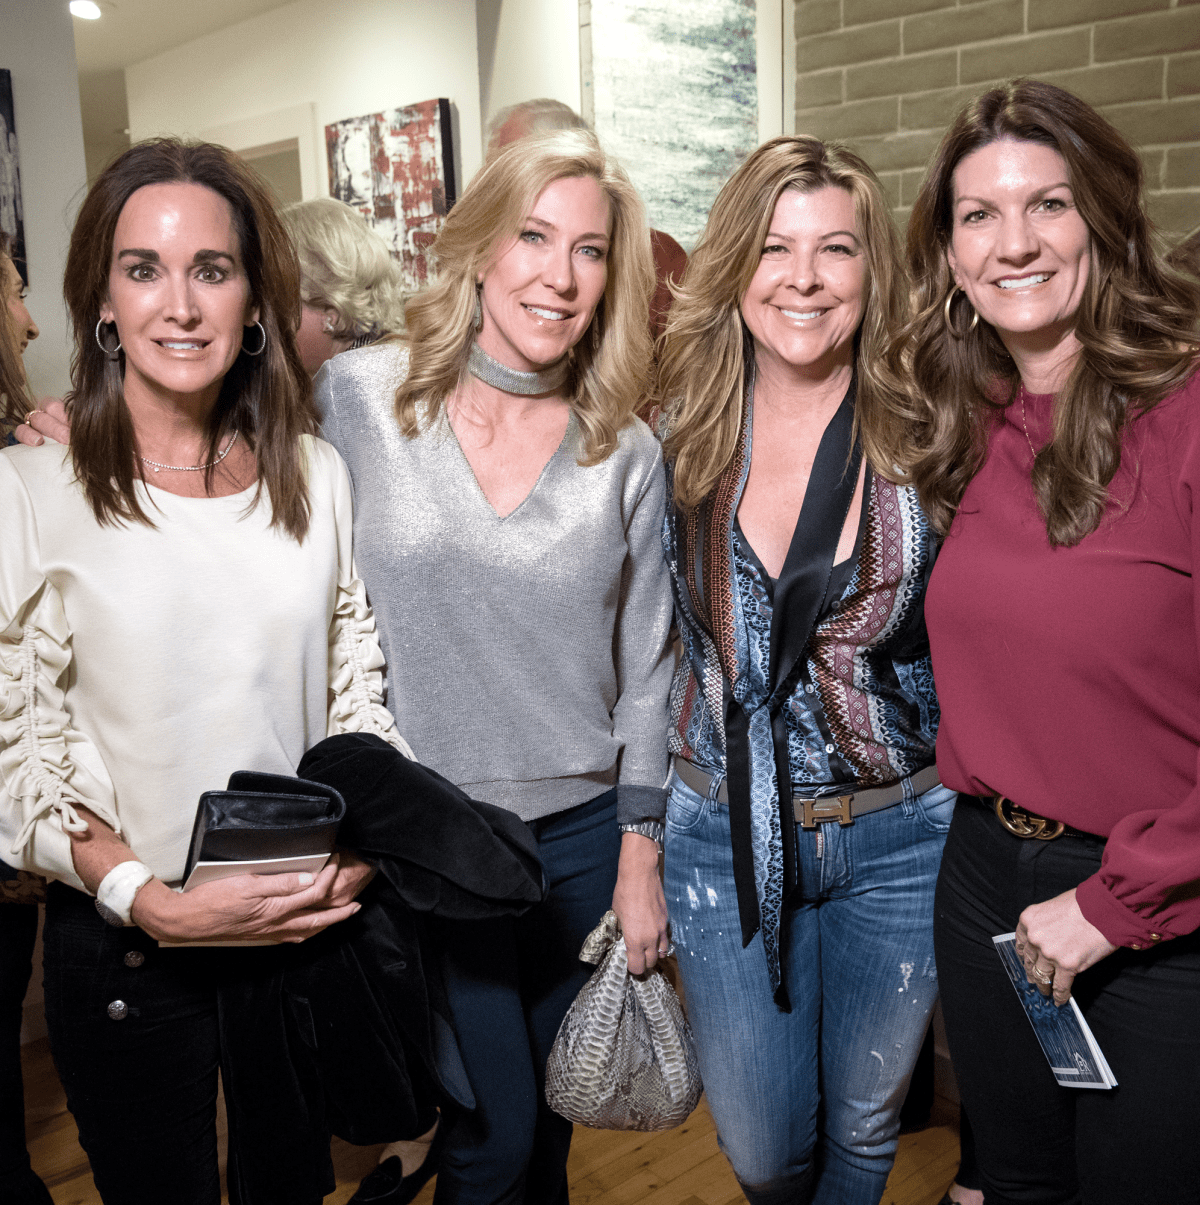 Dallas, LR Art House opening, January 2018, Christy Crenshaw, Allison Benners, Deanna Mahowald, Jennifer Newhoff